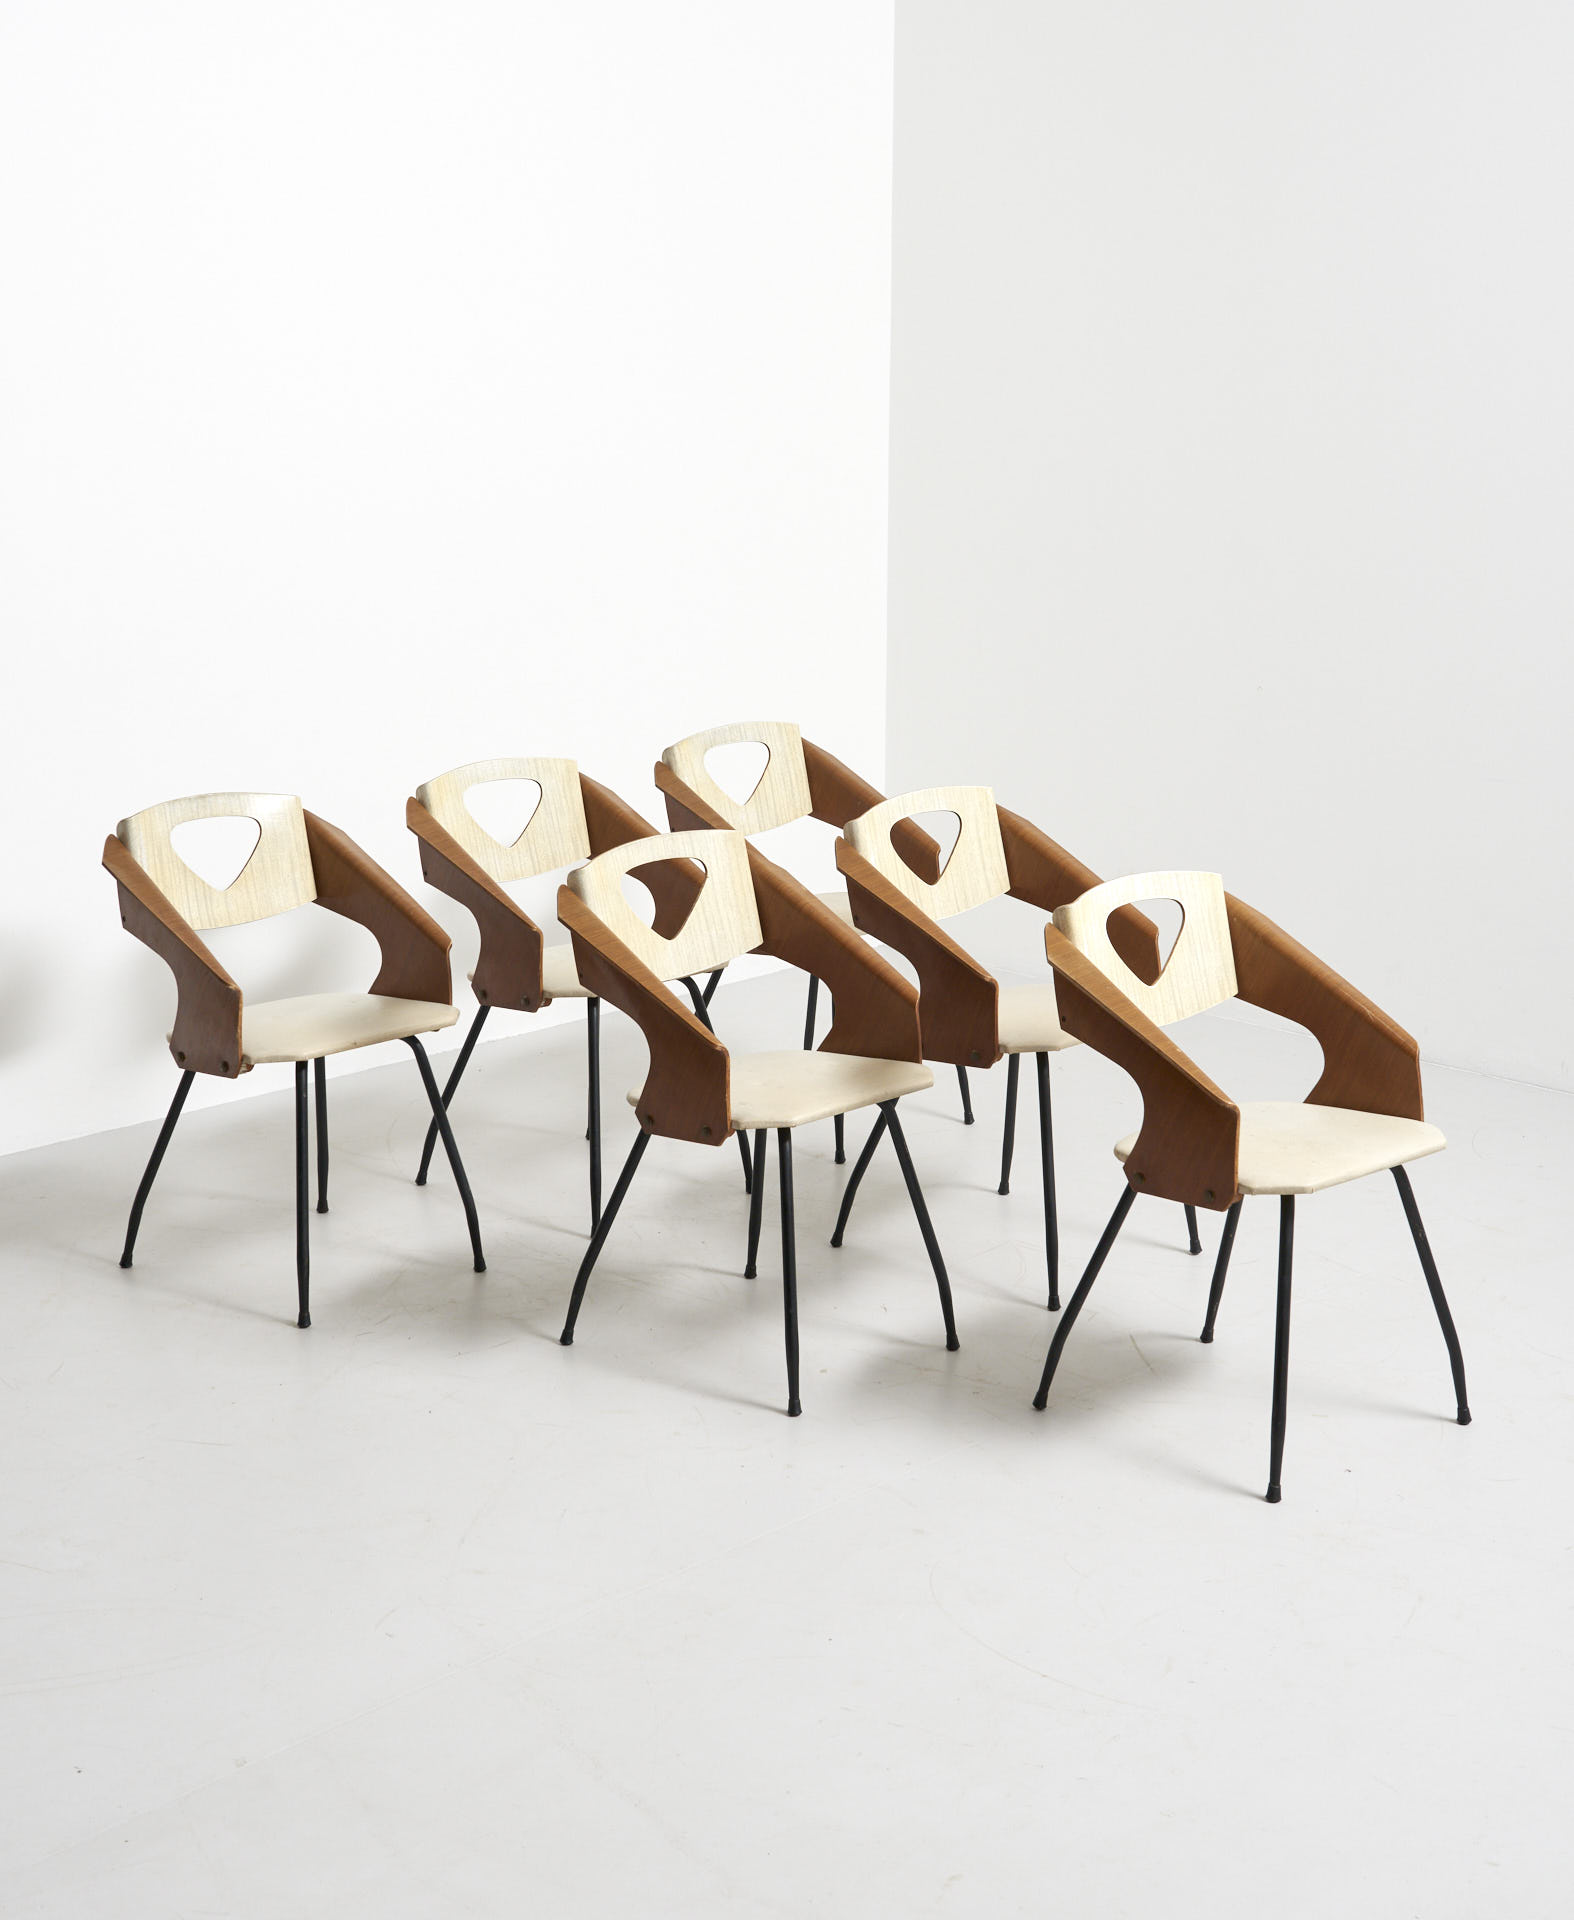 modestfurniture-vintage-2473-italian-dining-chairs-1950-plywood02